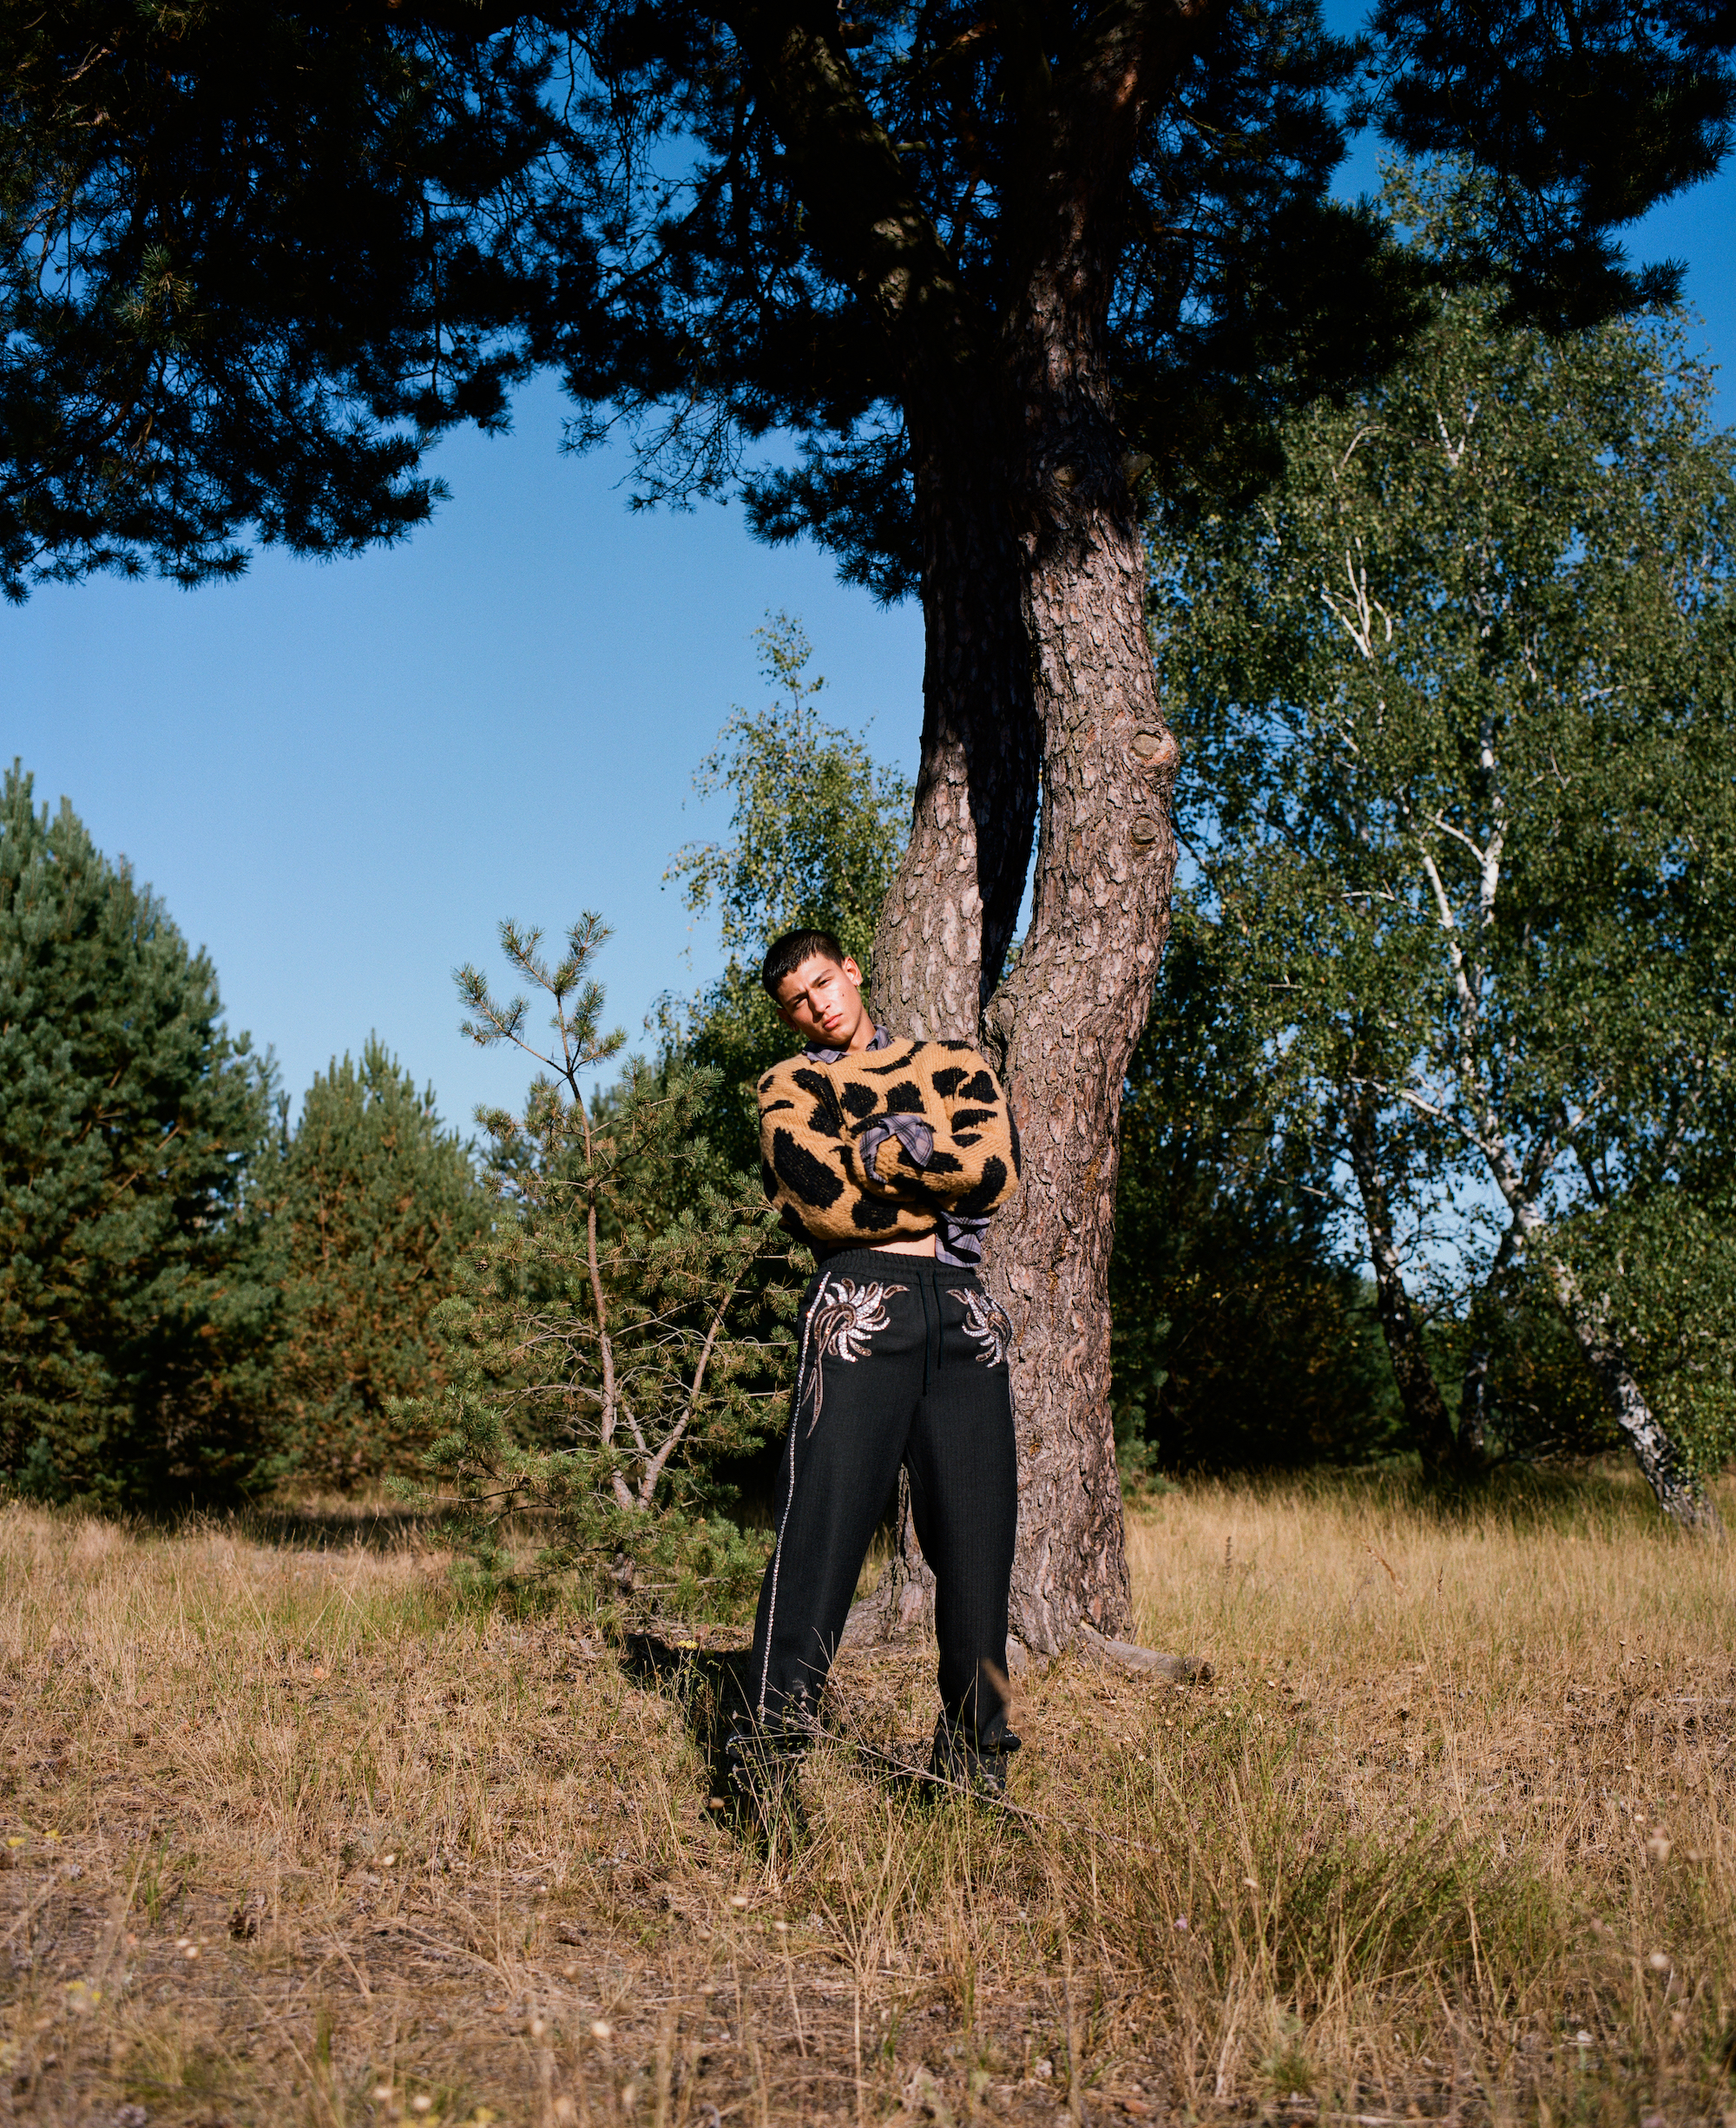 Emilio Sakraya shirtless in jumper and black trousers standing by tree